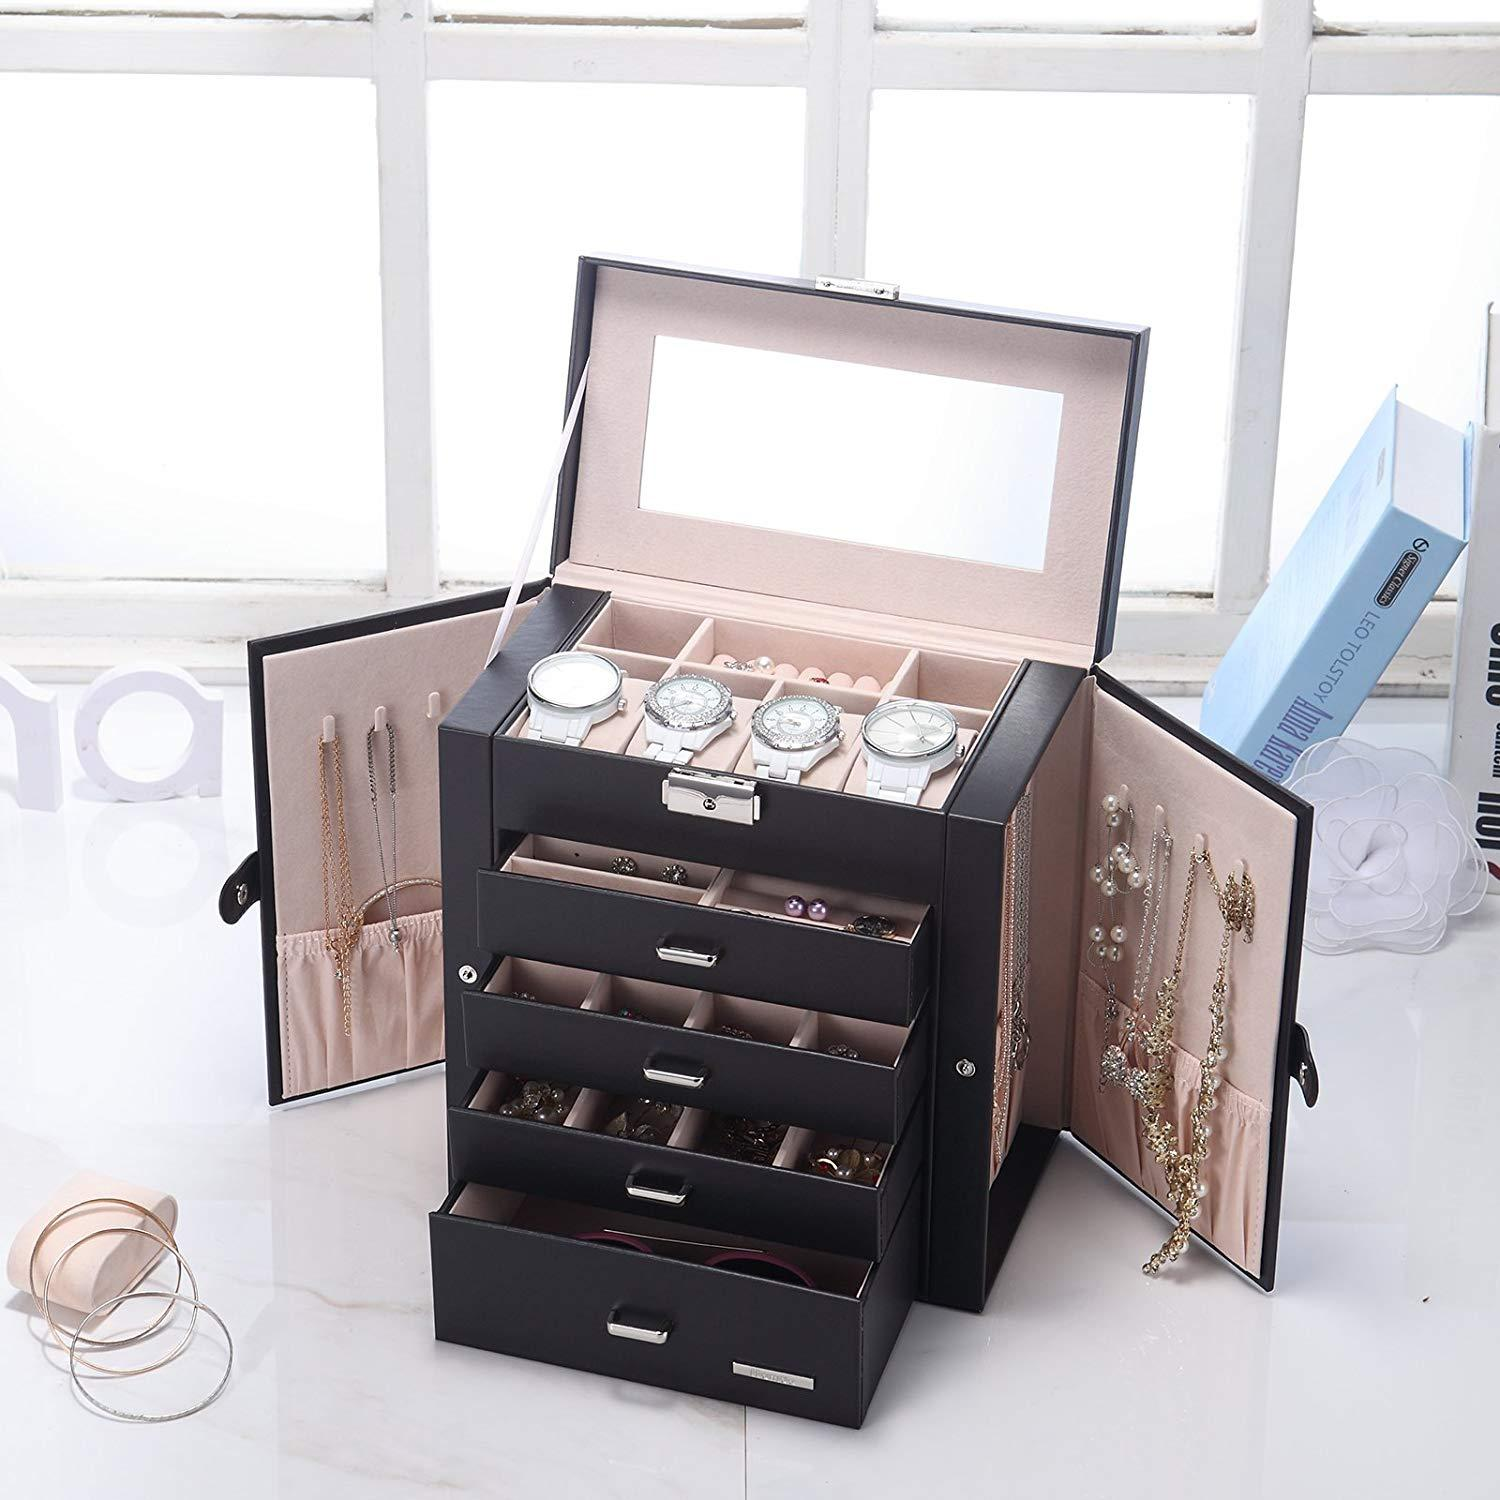 Synthetic Leather Huge Jewelry Box Mirrored Watch Organizer Necklace Ring Earring Storage Lockable Gift Case Black Storage Box B